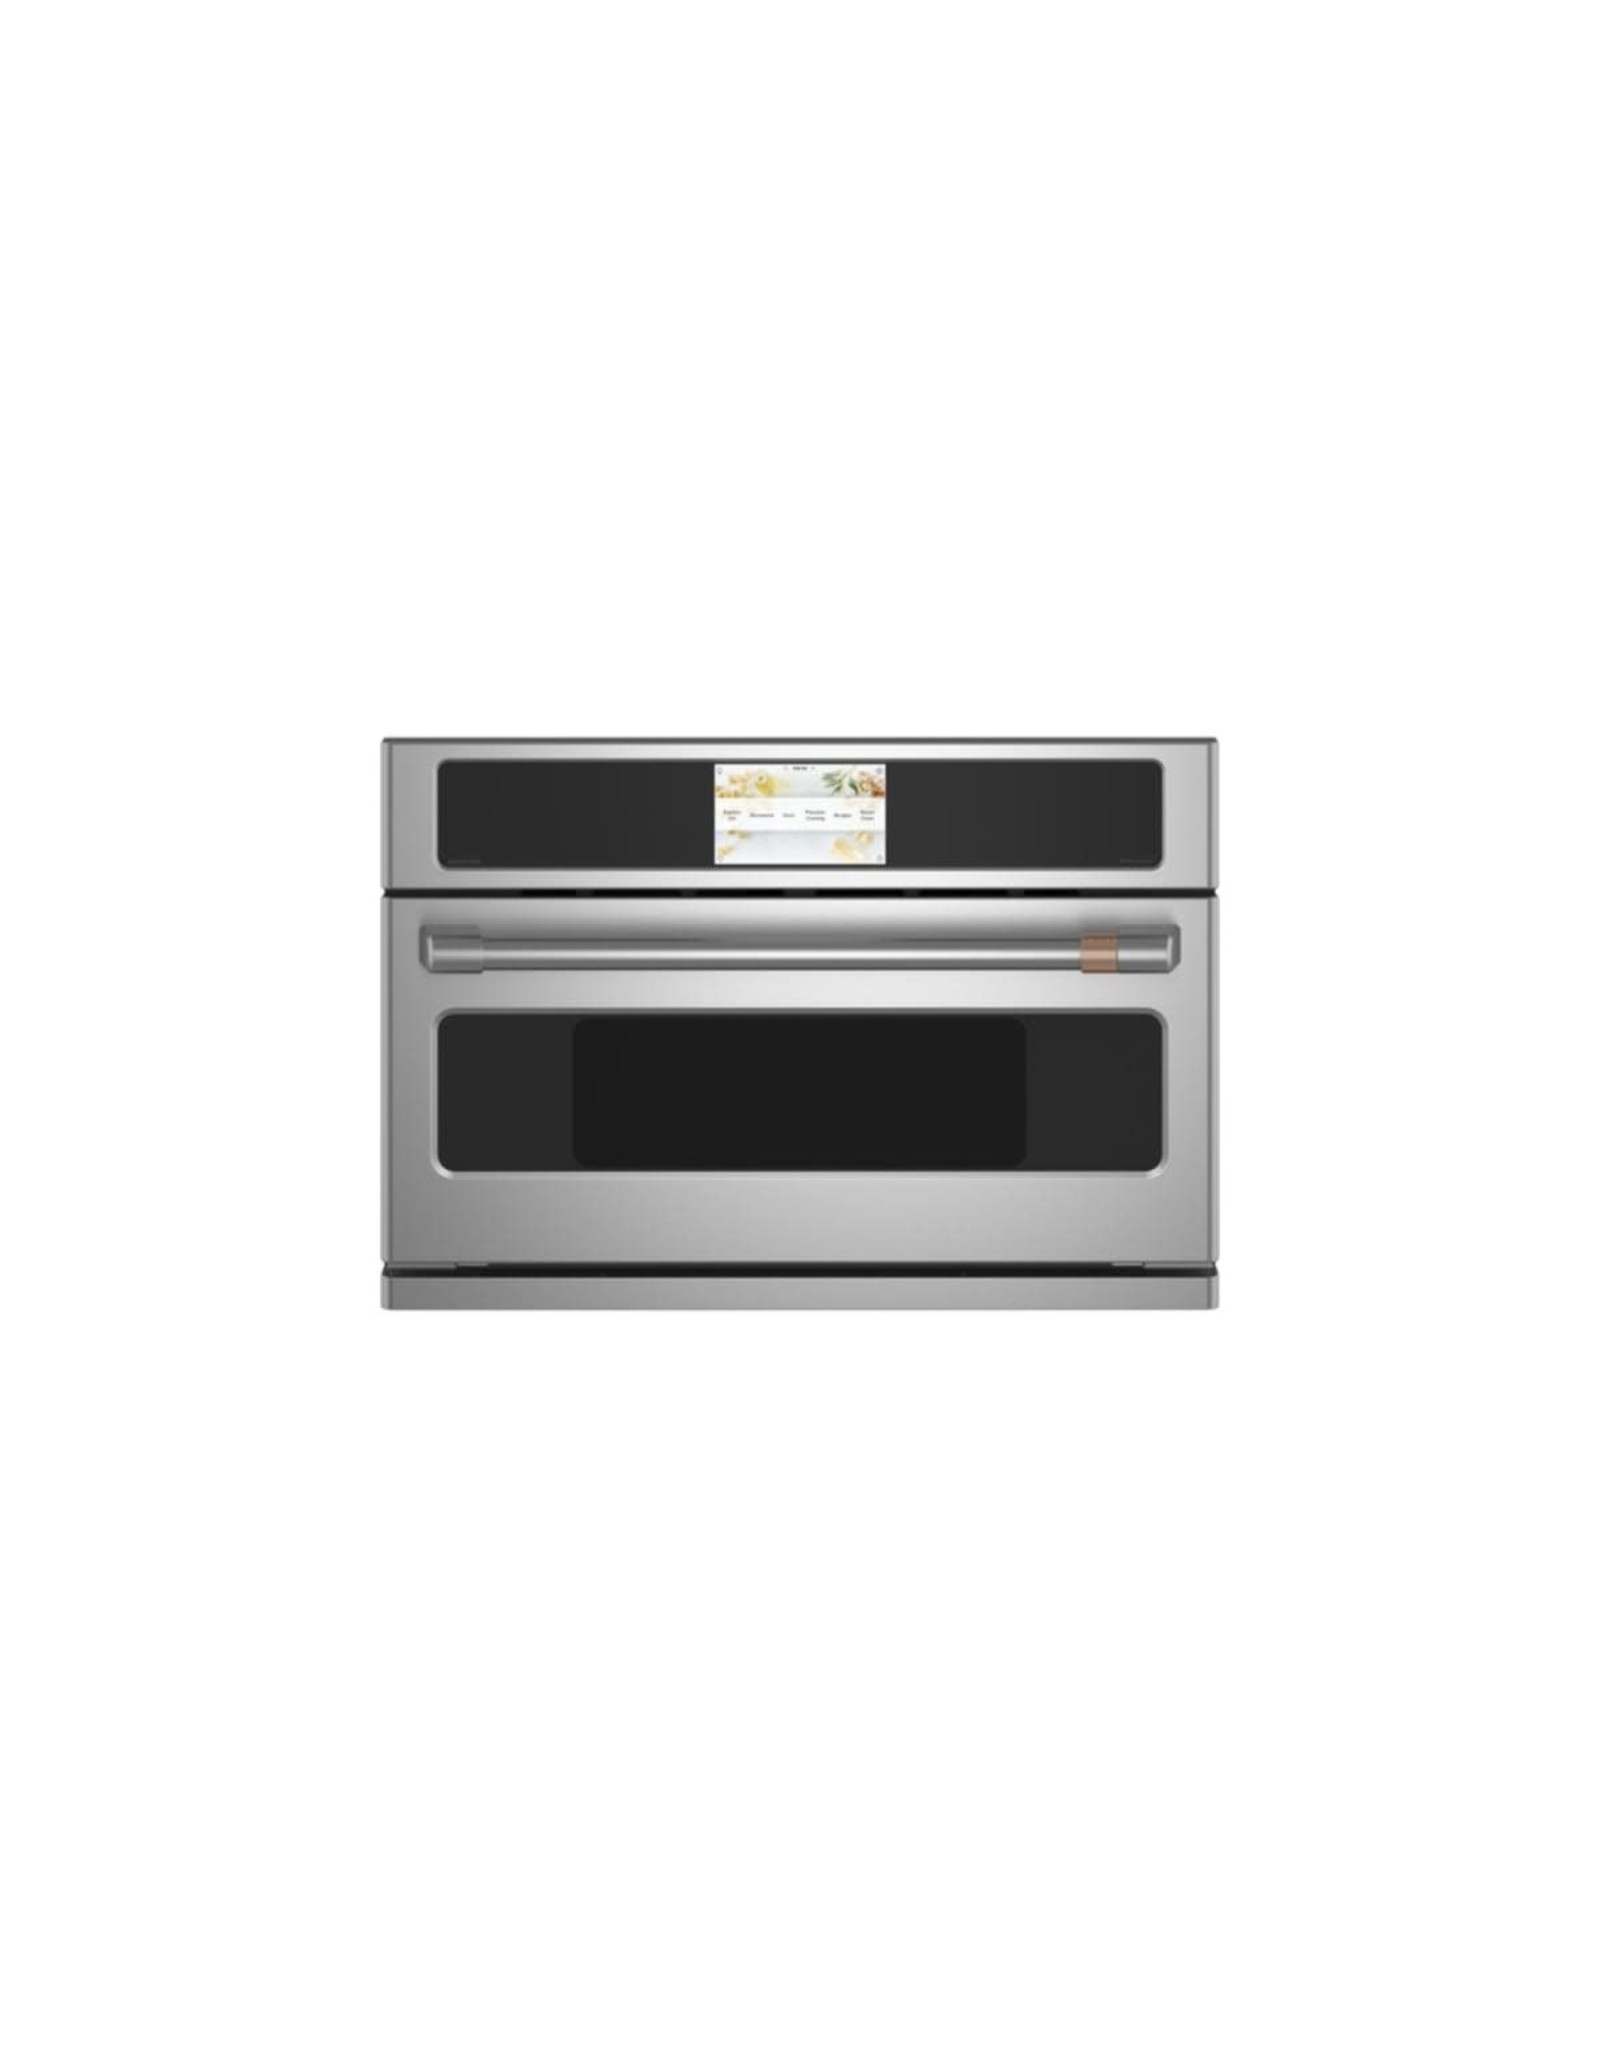 Cafe' CSB923P2NS1 30 in. 1.7 cu. ft. Smart Electric Wall Oven and Microwave Combo with 240 Volt Advantium Technology in Stainless Steel